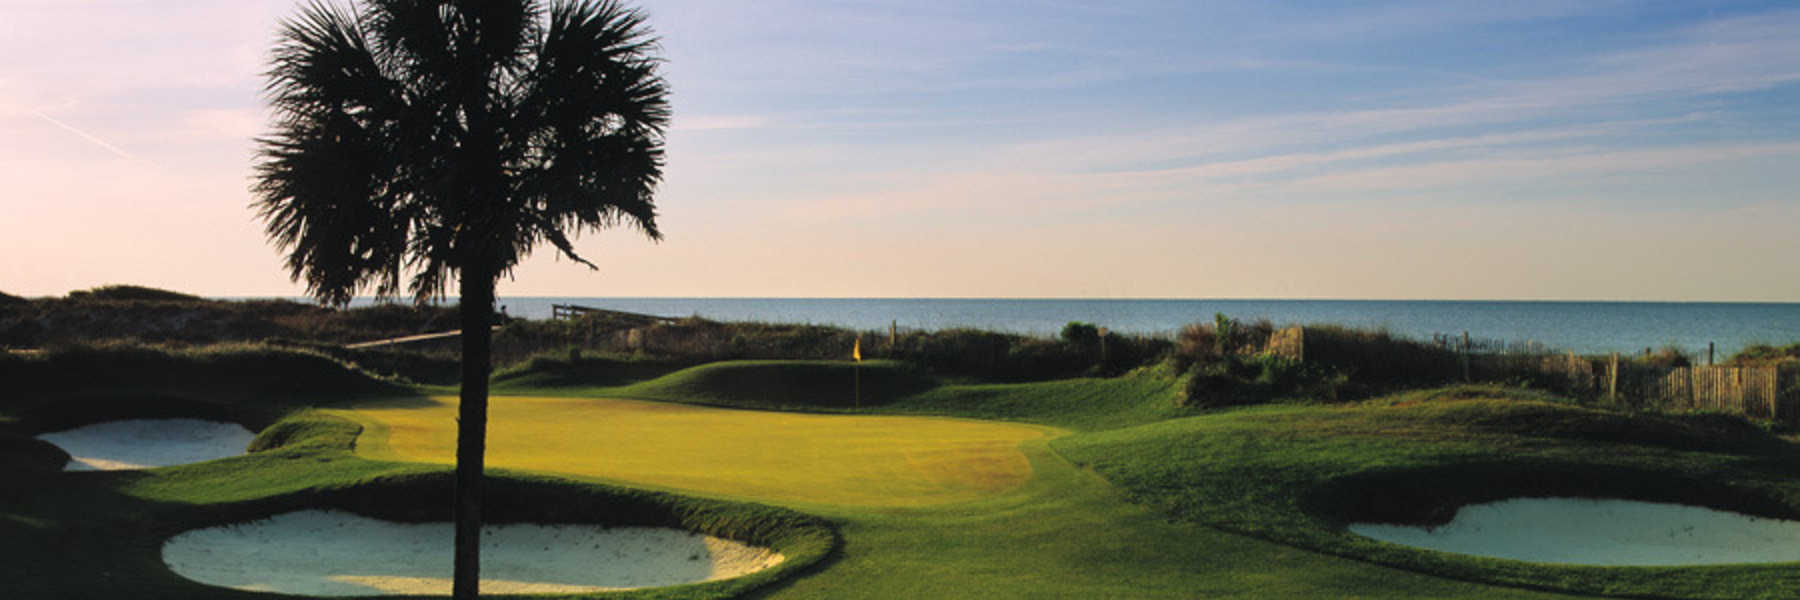 Golf Vacation Package - Kiawah Island Resort - Premier Stay and Play starting at $214 per person, per day!